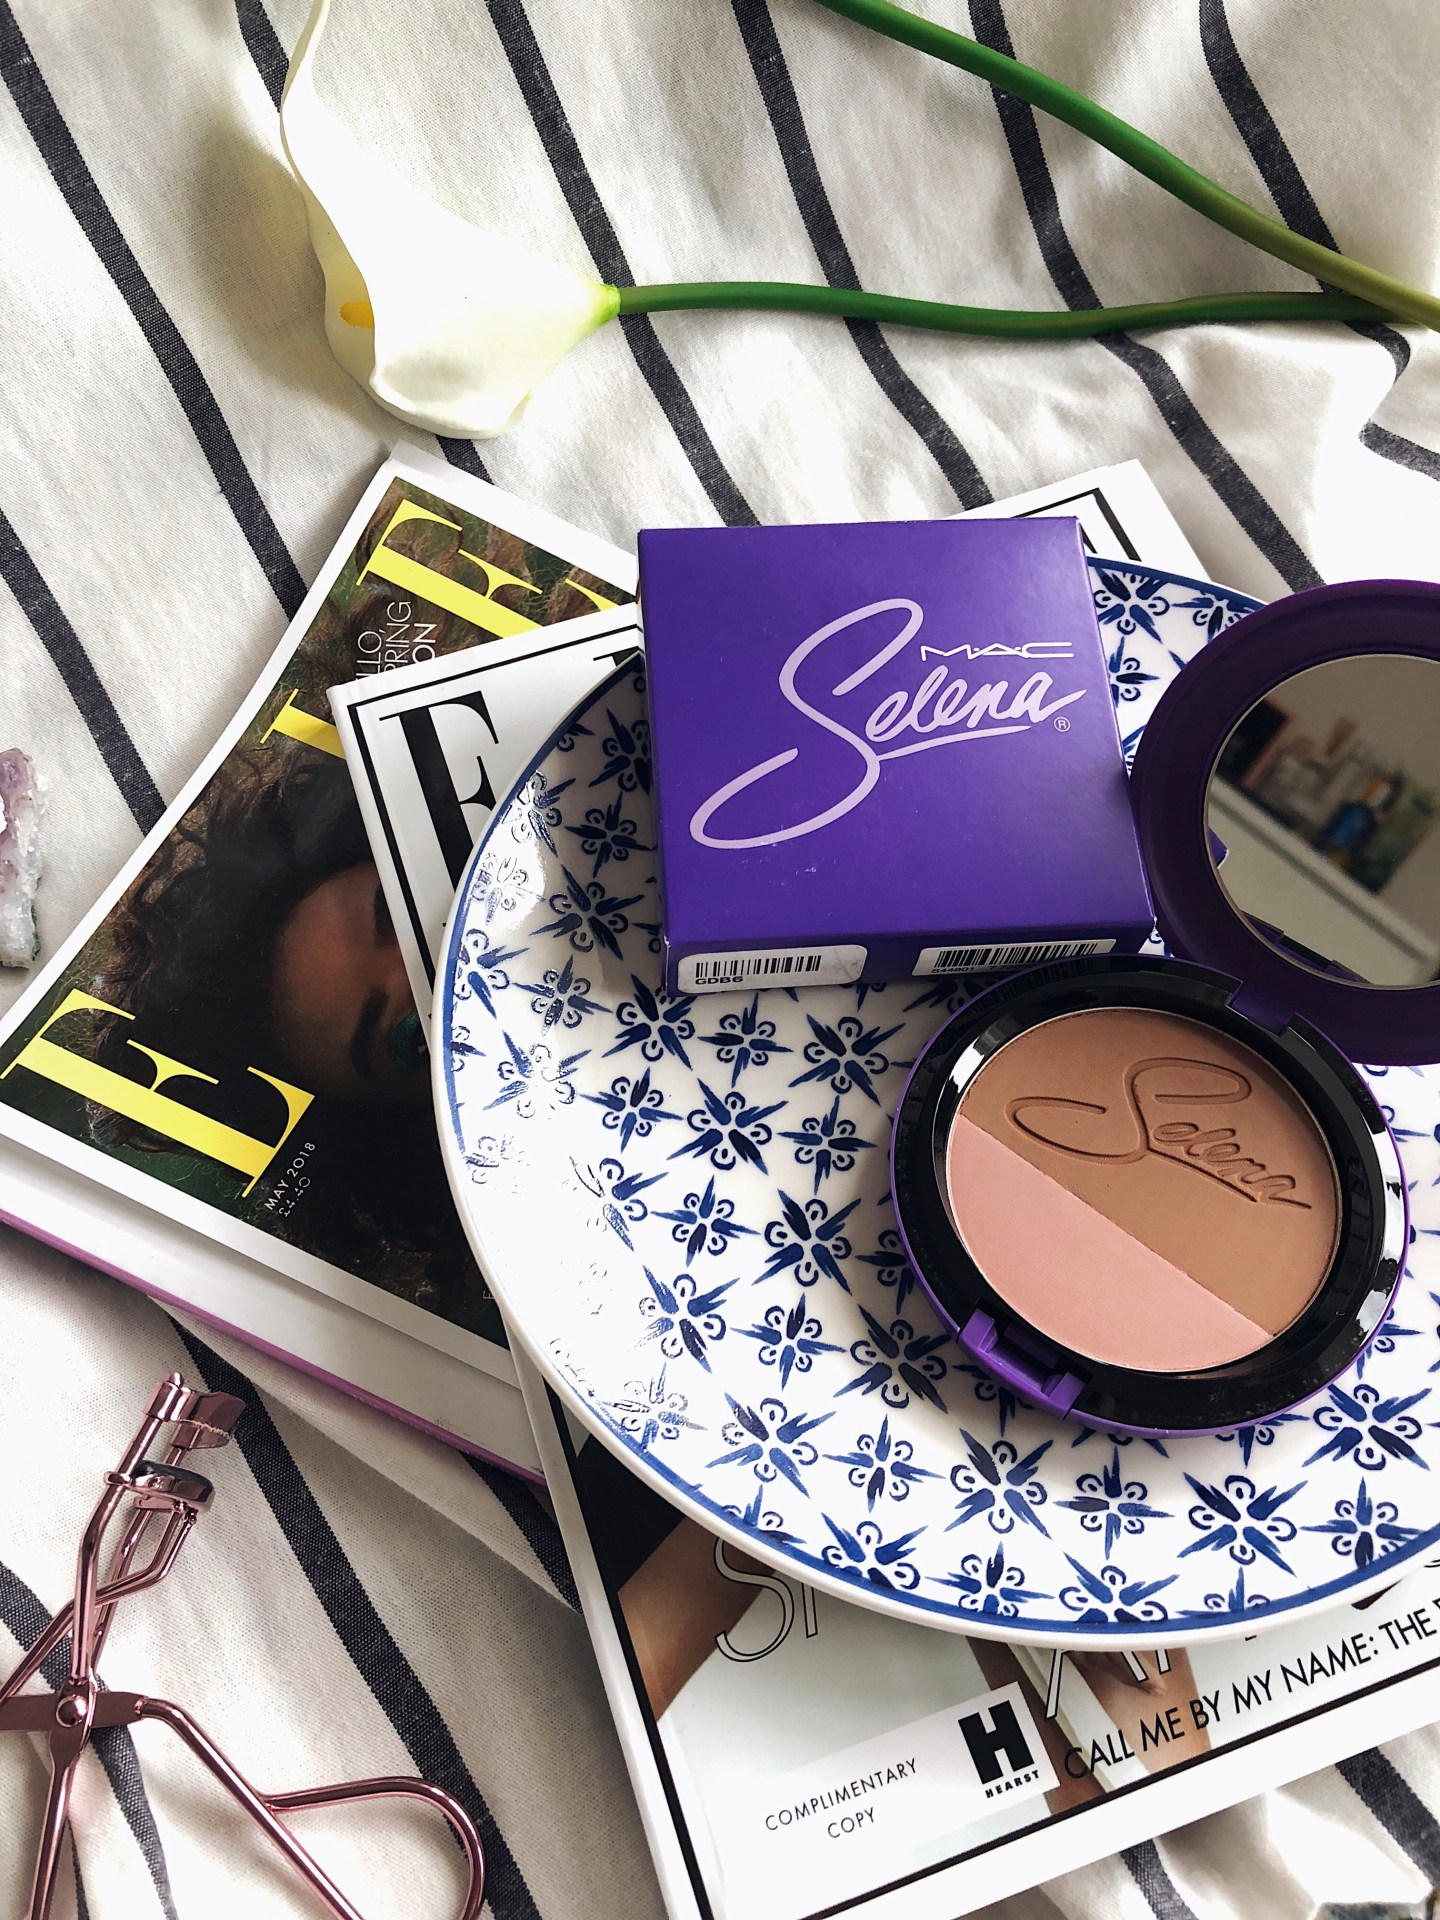 May 2018 Look Incredible Deluxe Subscription Box - MAC Selena Powder Blush Duo Limited Edition